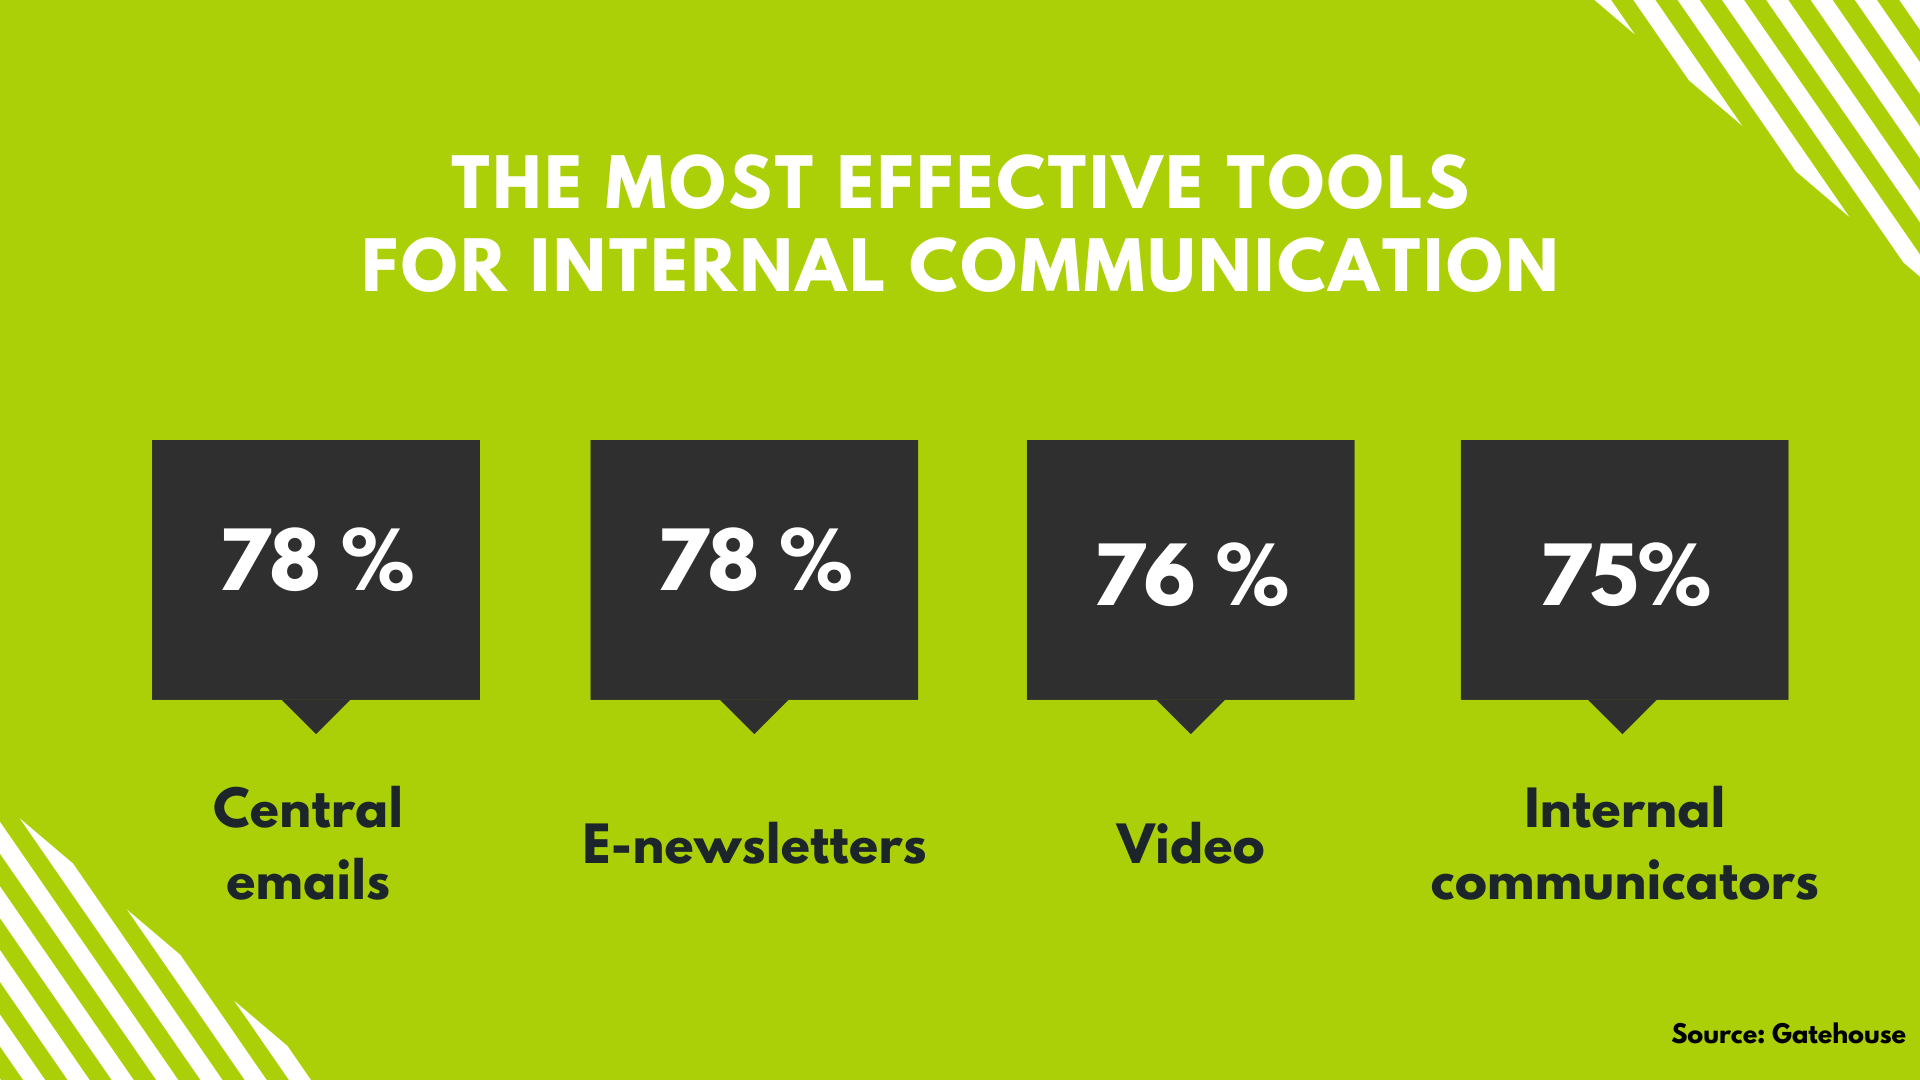 the most effective tools for internal communication